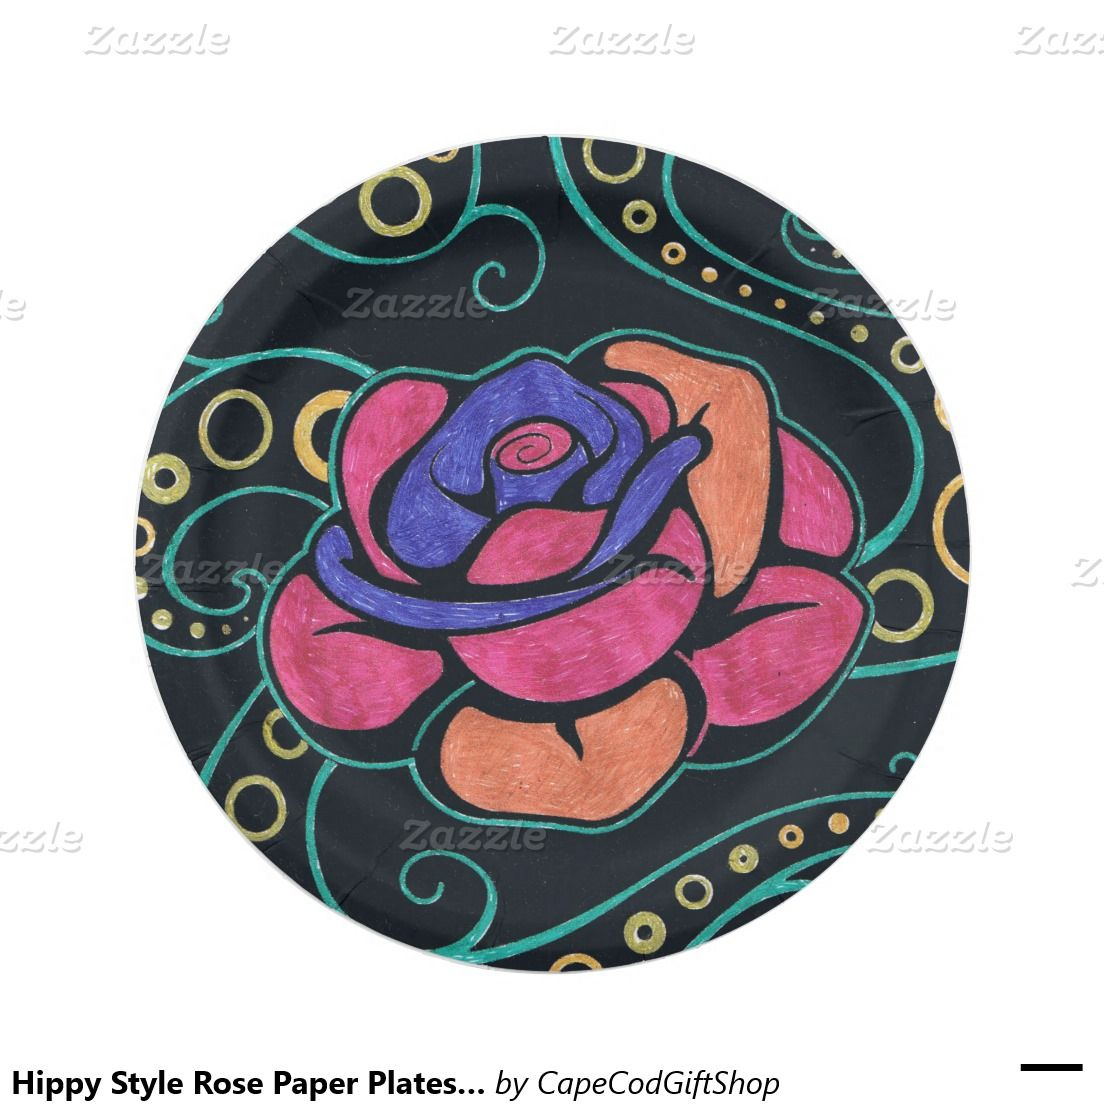 Hippy Style Rose Paper Plates 7  7 Inch Paper Plate  sc 1 st  Pinterest & Hippy Style Rose Paper Plates 7